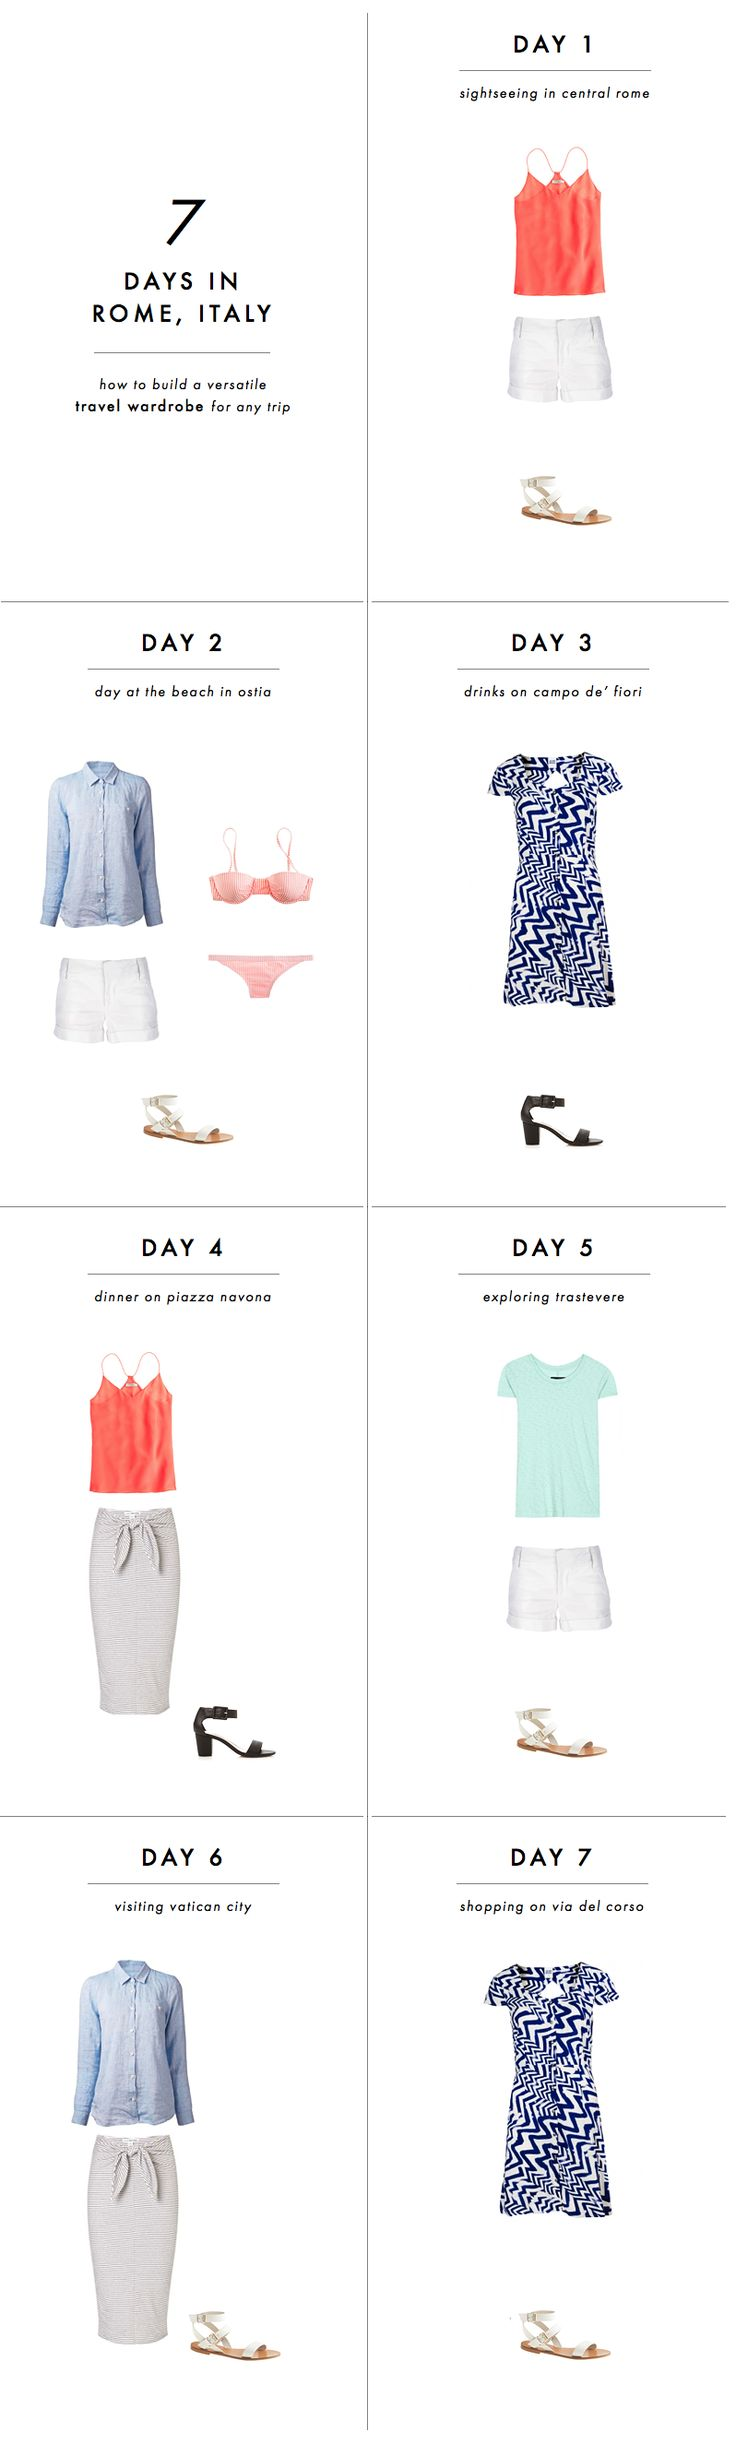 How to build a versatile travel wardrobe for any trip: A 3-step formula - INTO MIND